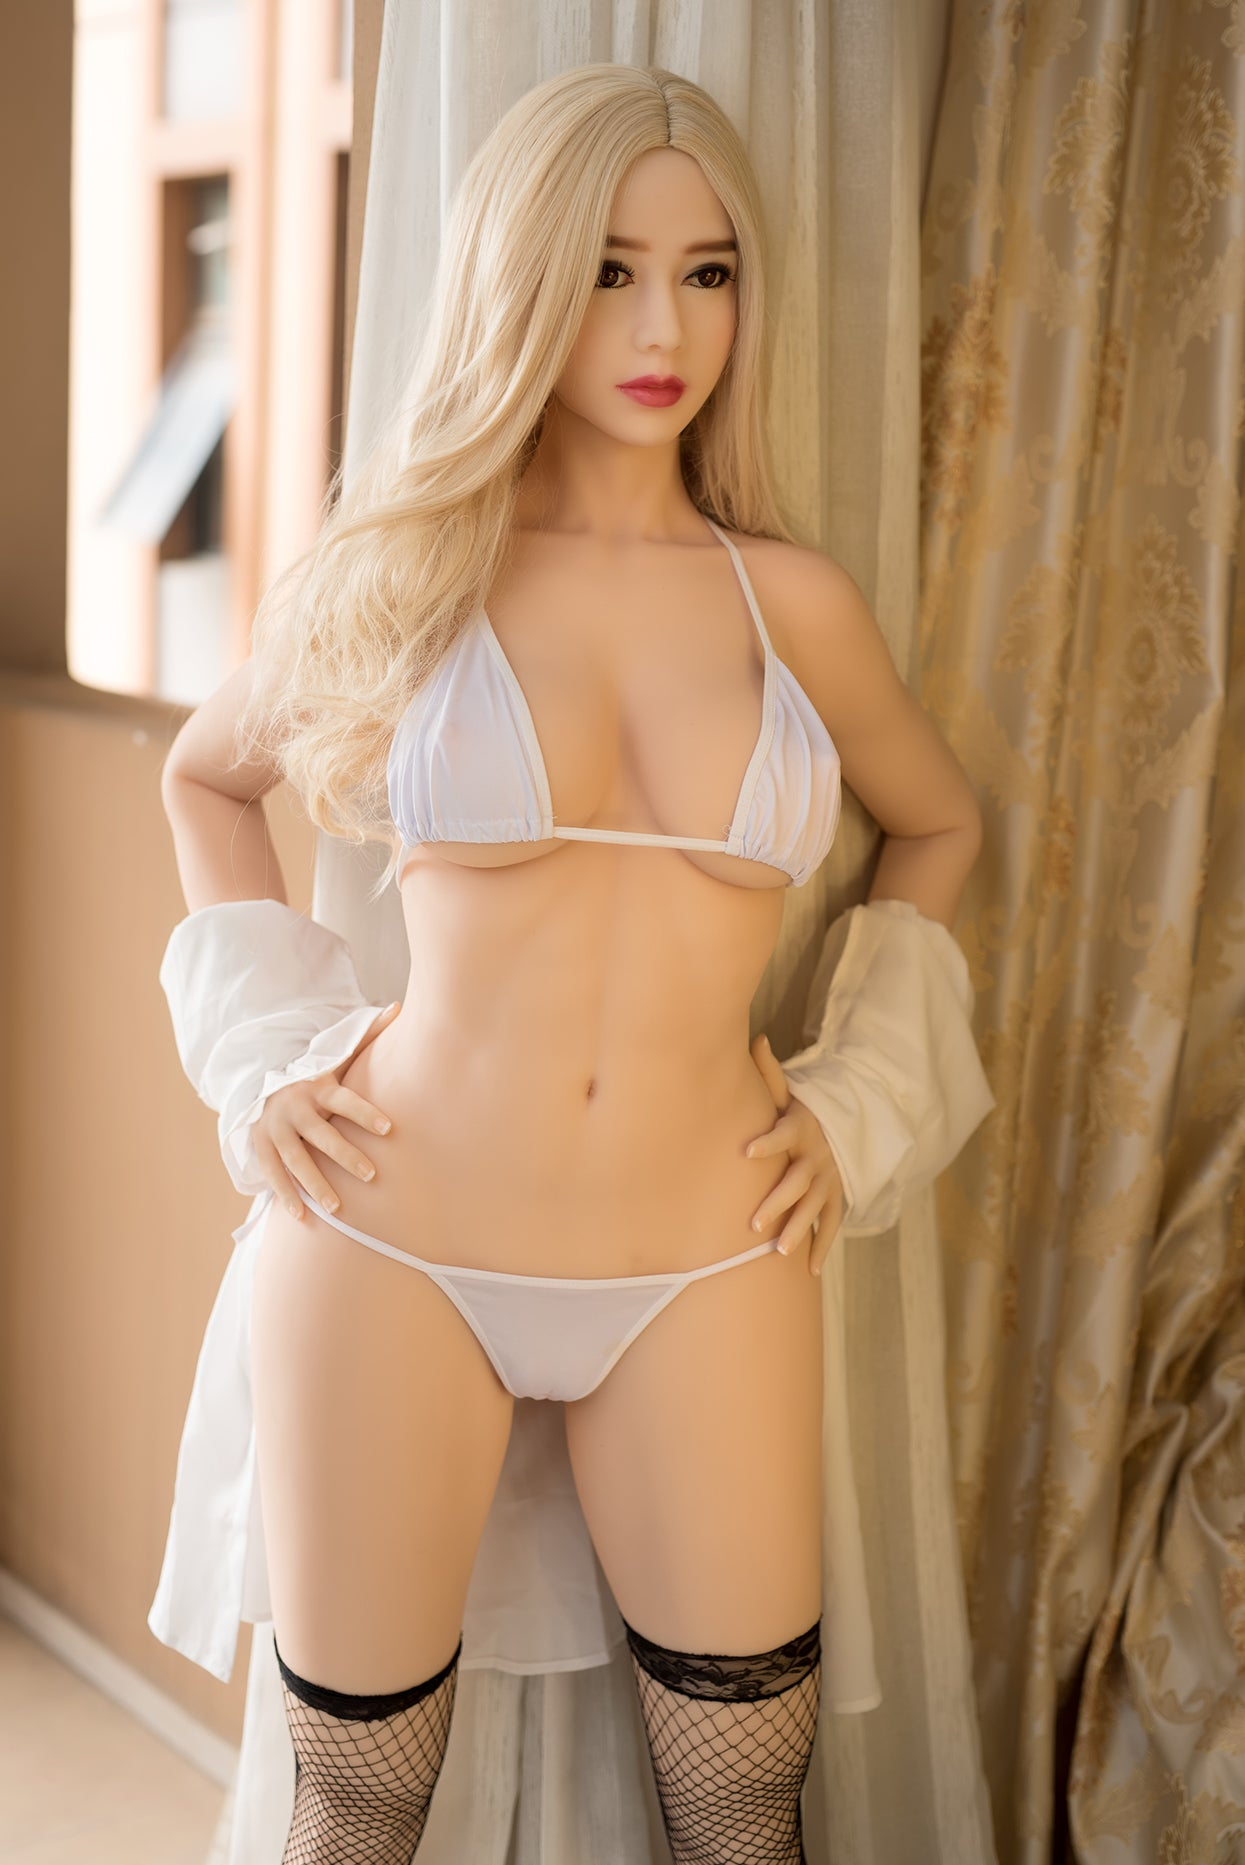 mariann 164cm 5ft5 blonde medium tits athletic tpe sex doll(7)